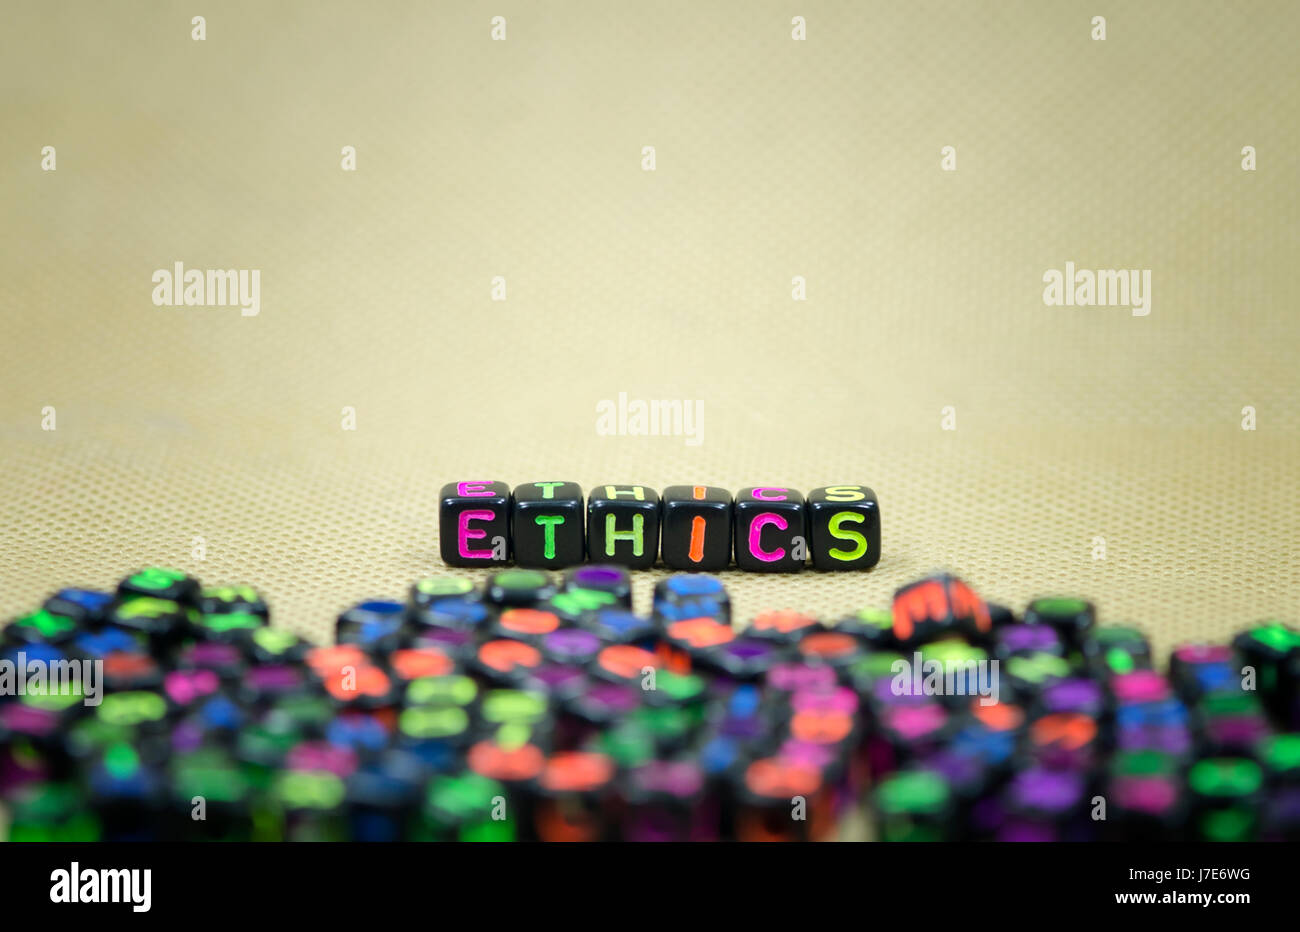 word ethics using colorful beads.conceptual image. - Stock Image